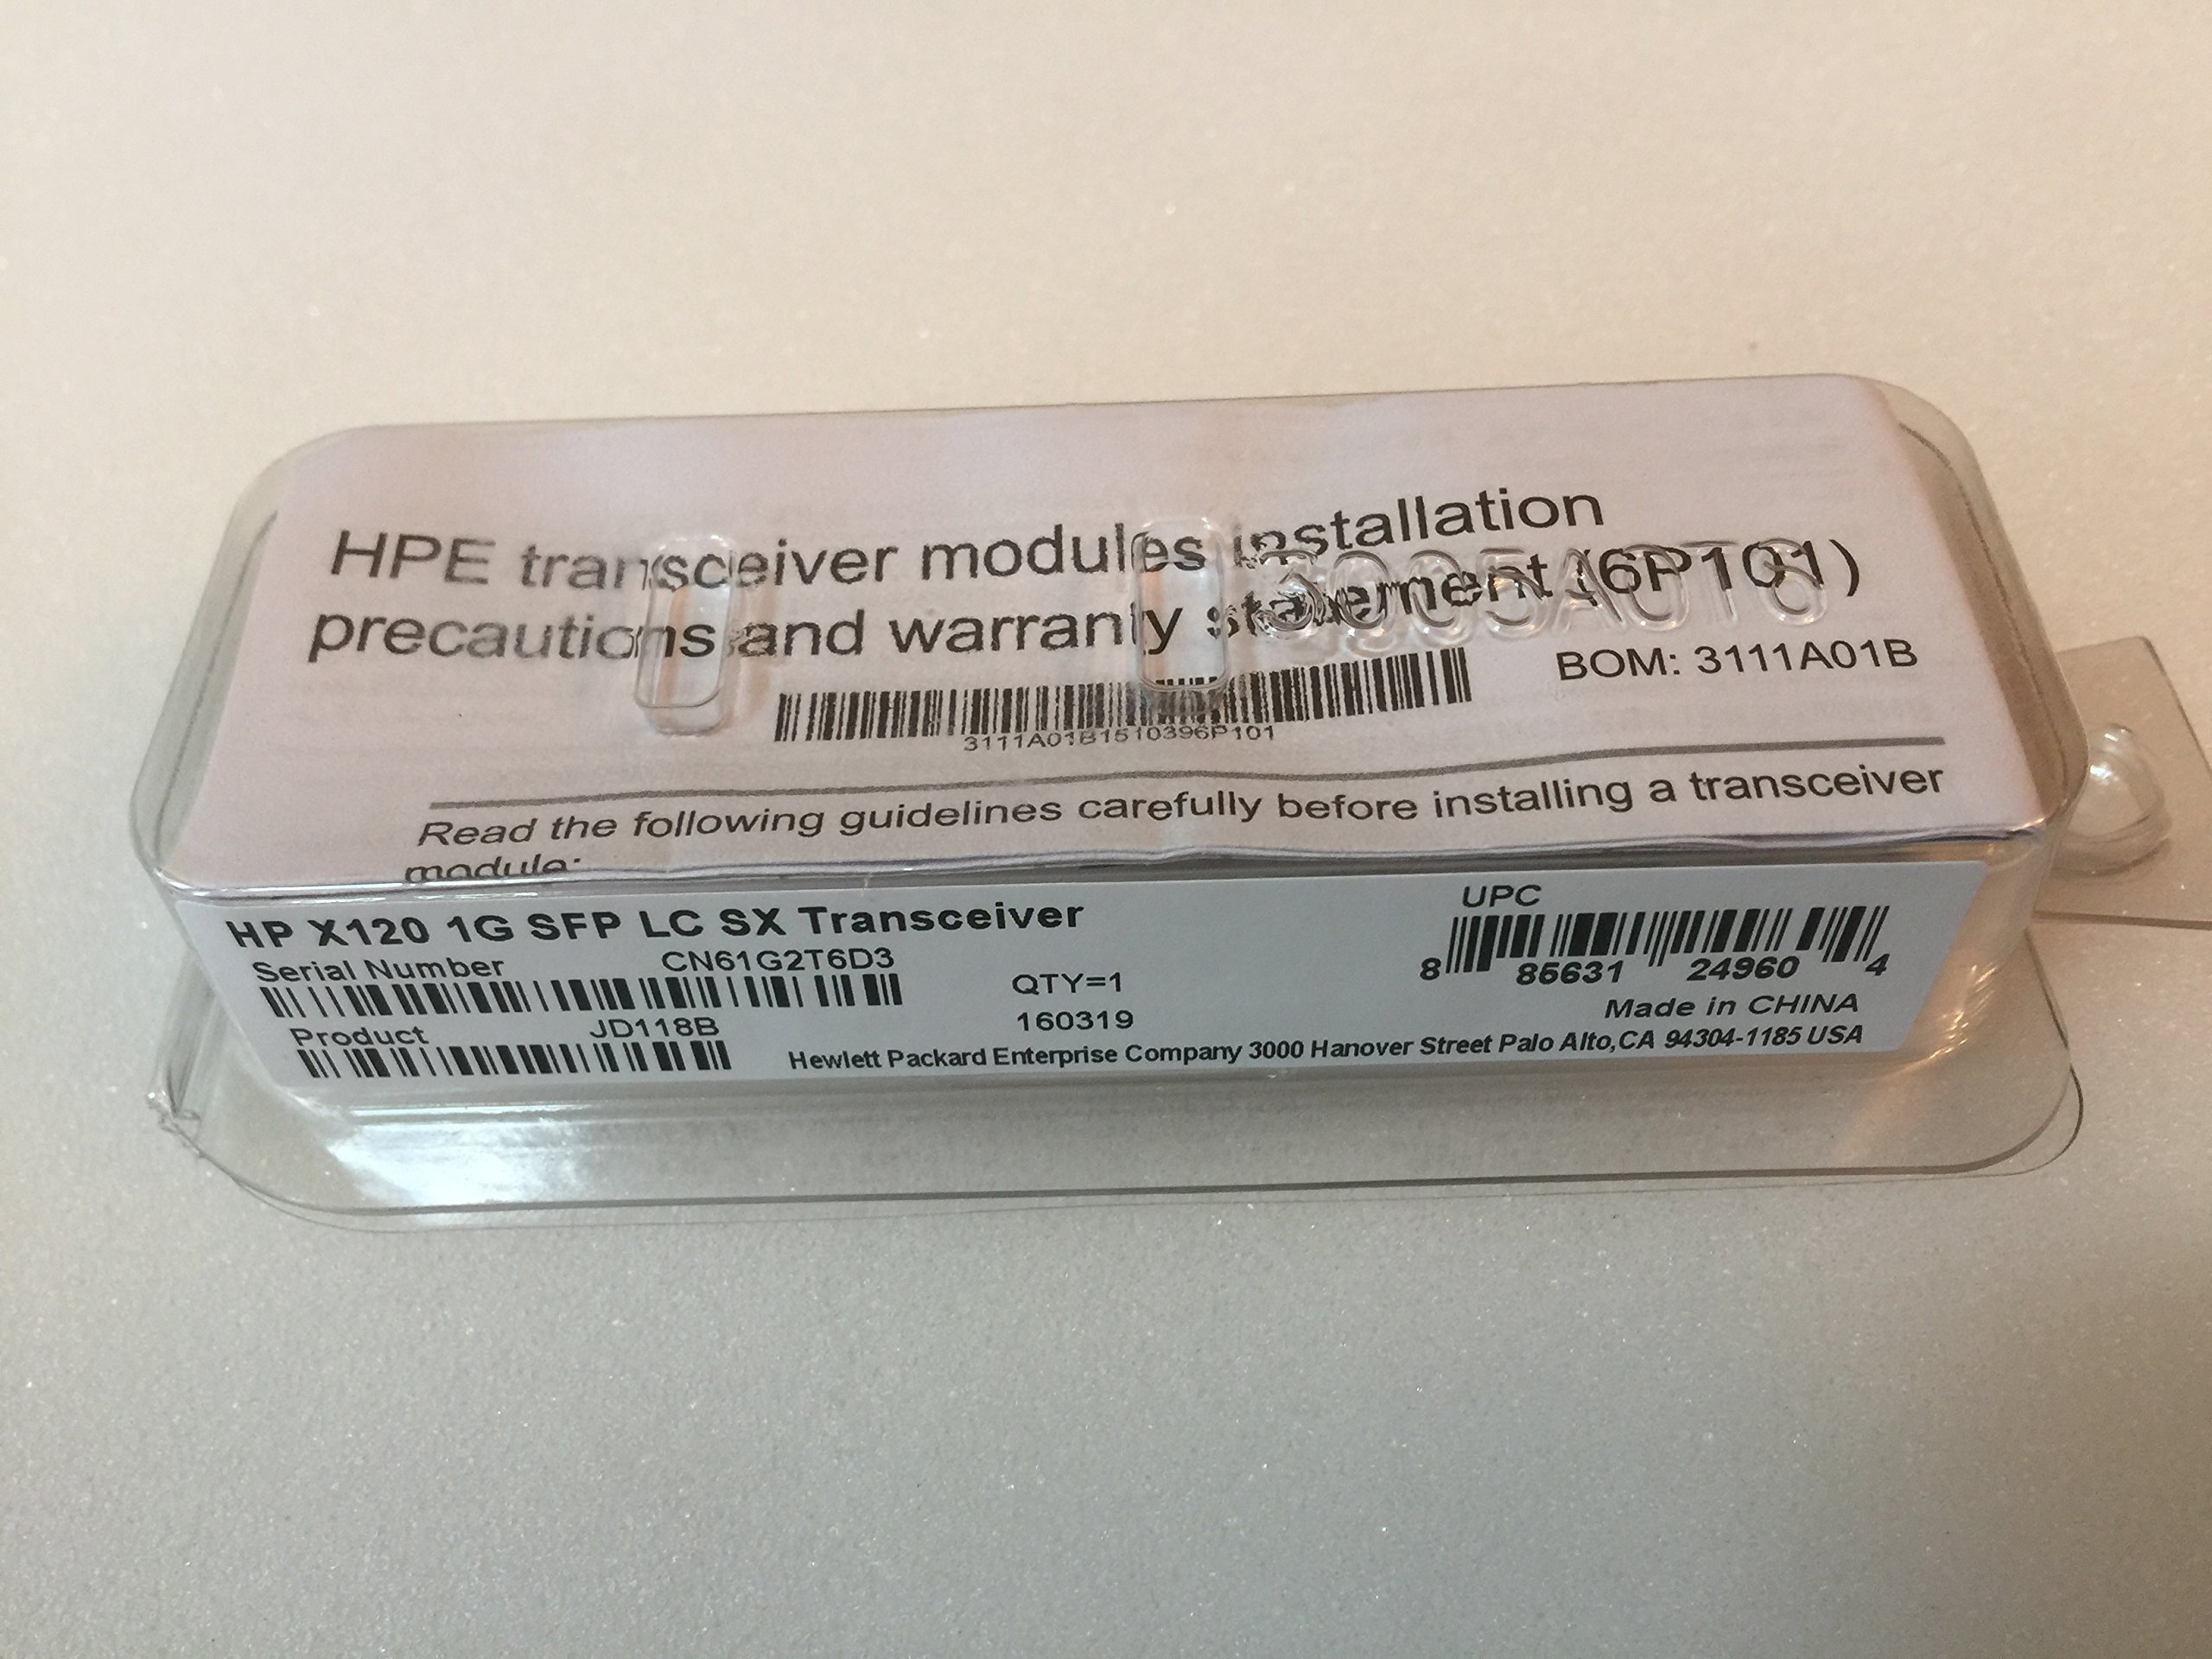 HP JD118B X120 1Gb SFP LC SX Transceiver - Small Form-factor Pluggable (SFP) Gigabit transceiver with 850nm laser that provides a full-duplex Gigabit solution up to 550m (1804ft) on multimode fiber - Has one LC 1000BASE-SX port by HP